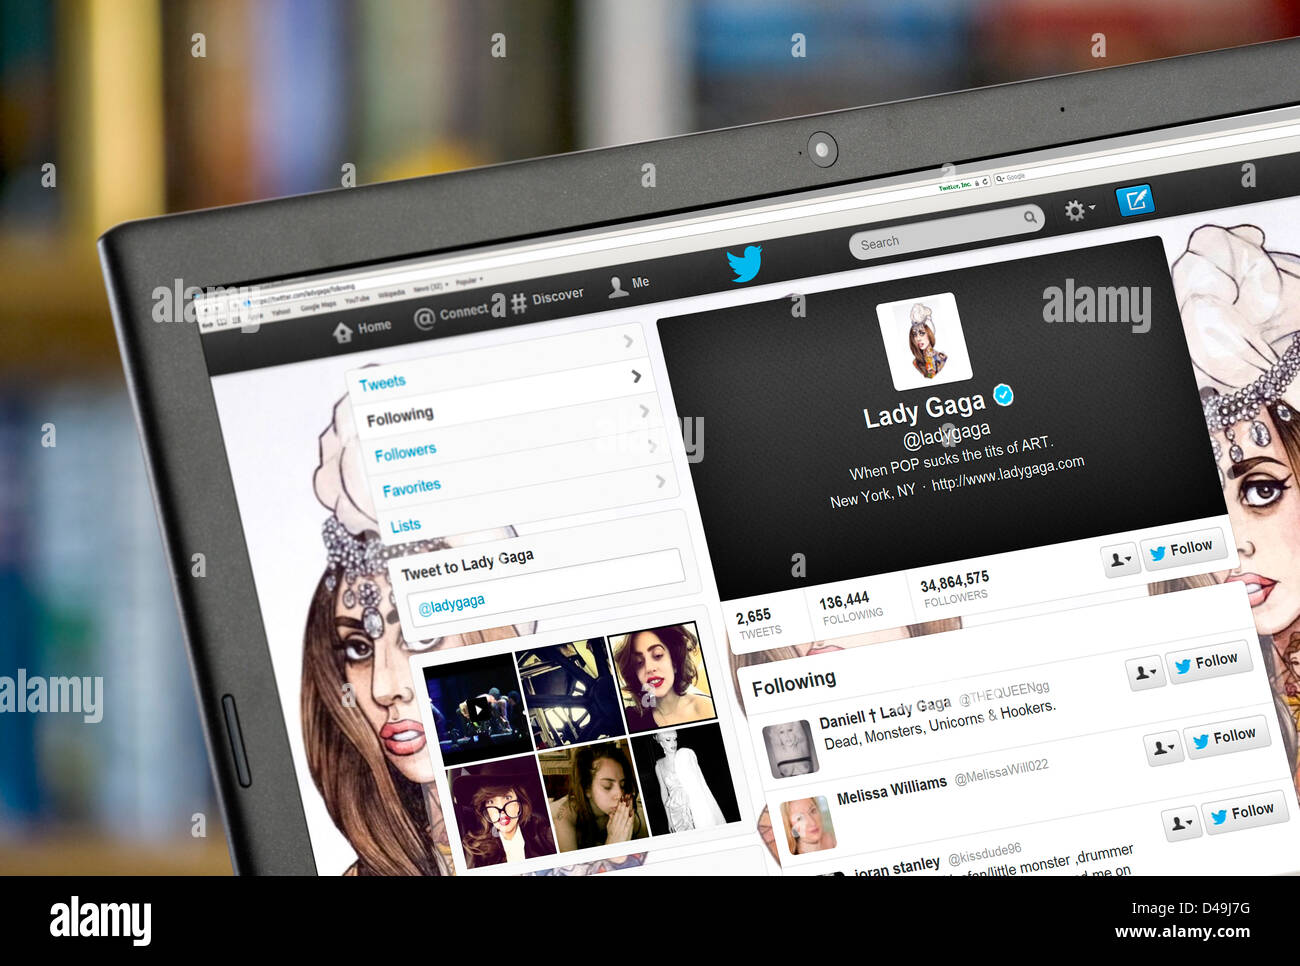 Lady Gaga's Twitter page on a laptop computer - Stock Image